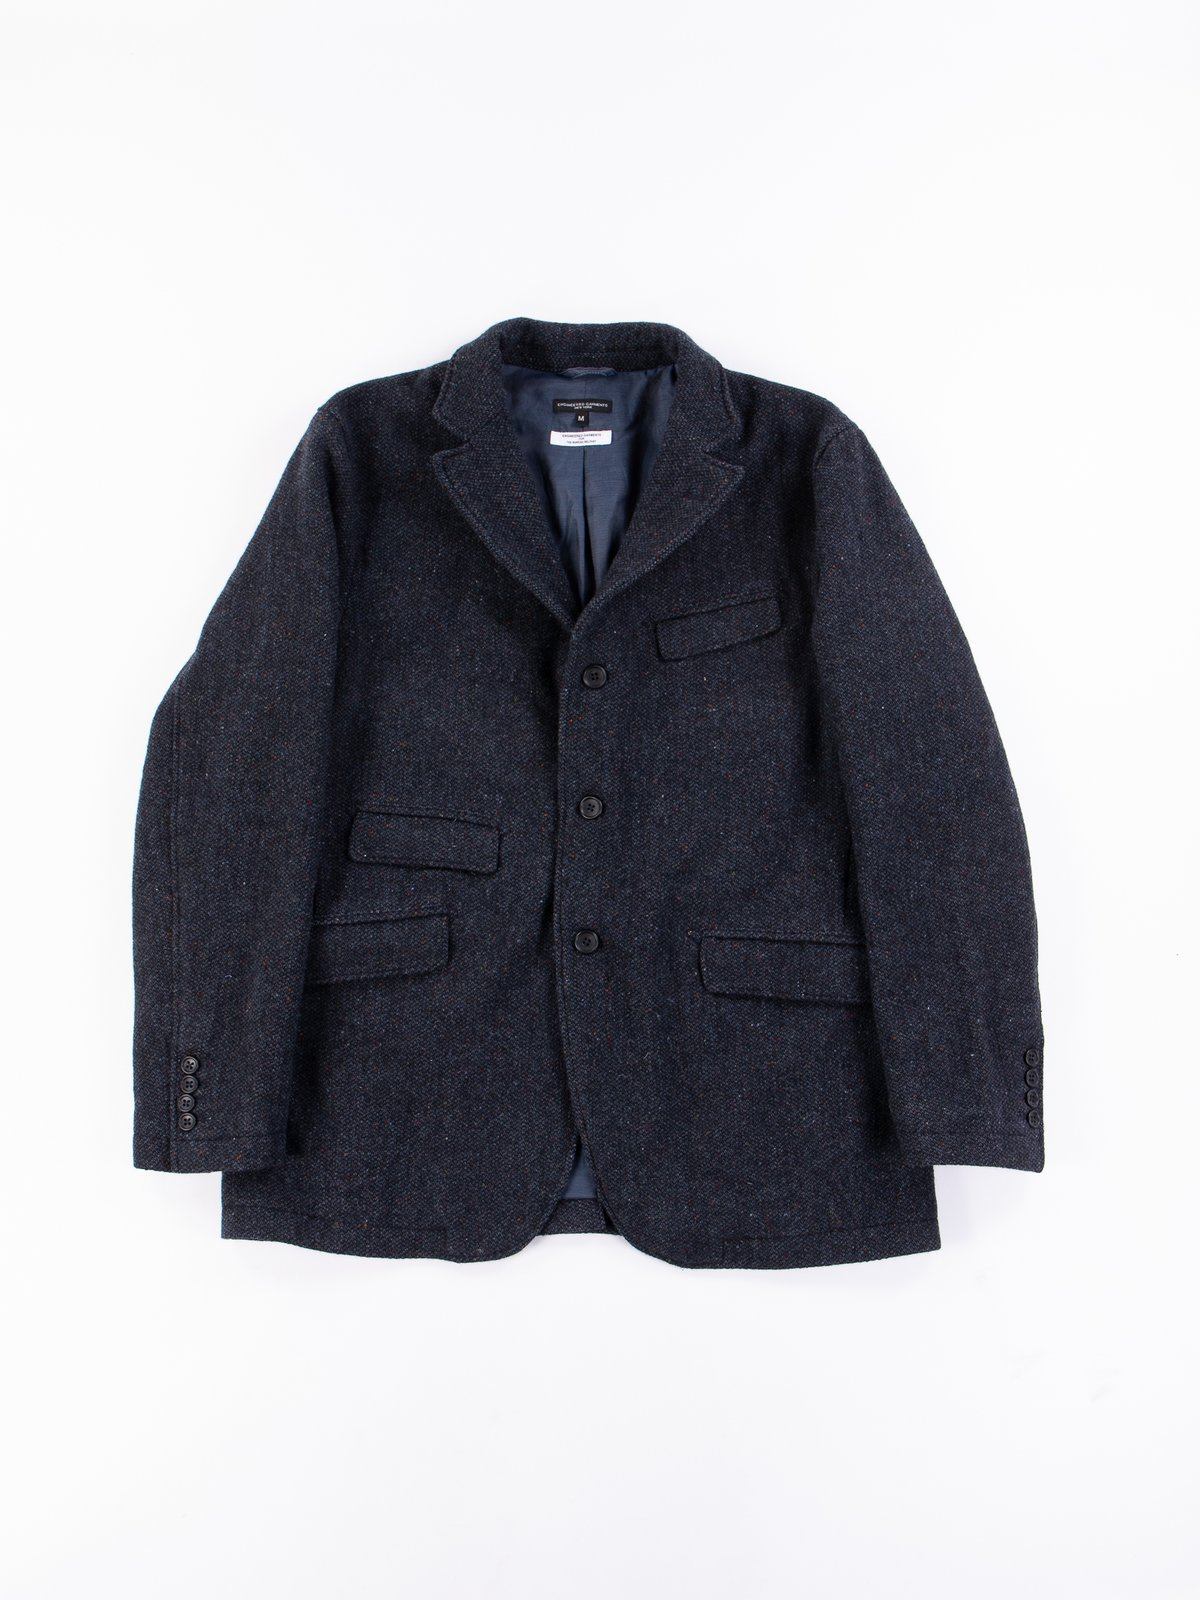 buying lace in vietnam engineered garments andover jacket